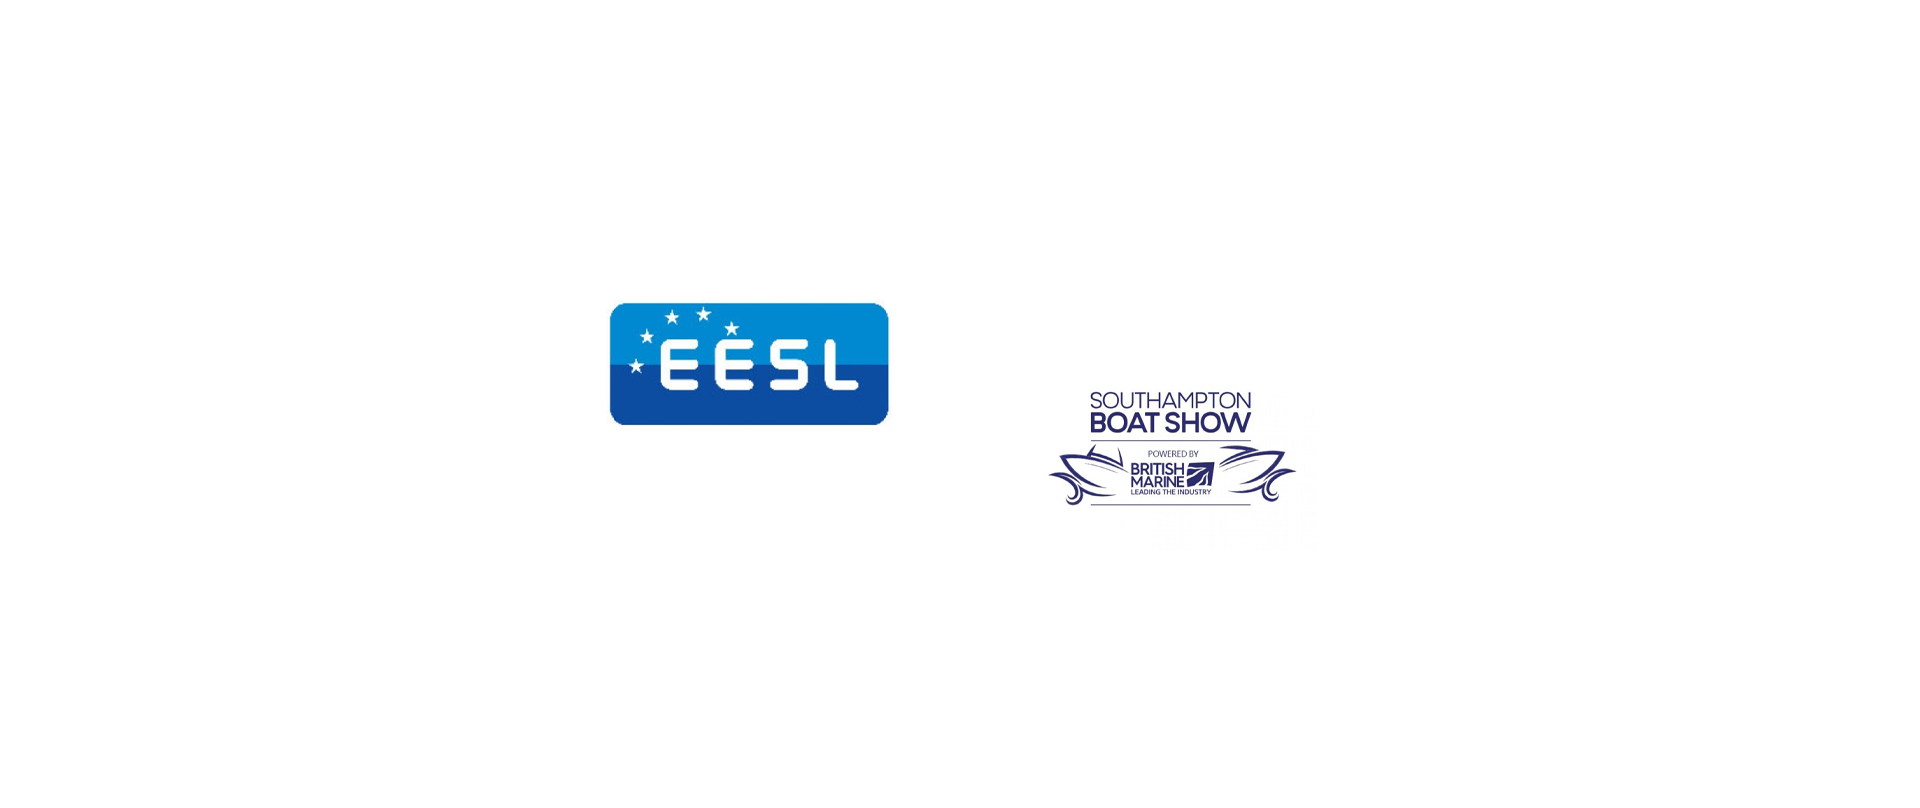 Southampton Boat Show and EESL Testimonials